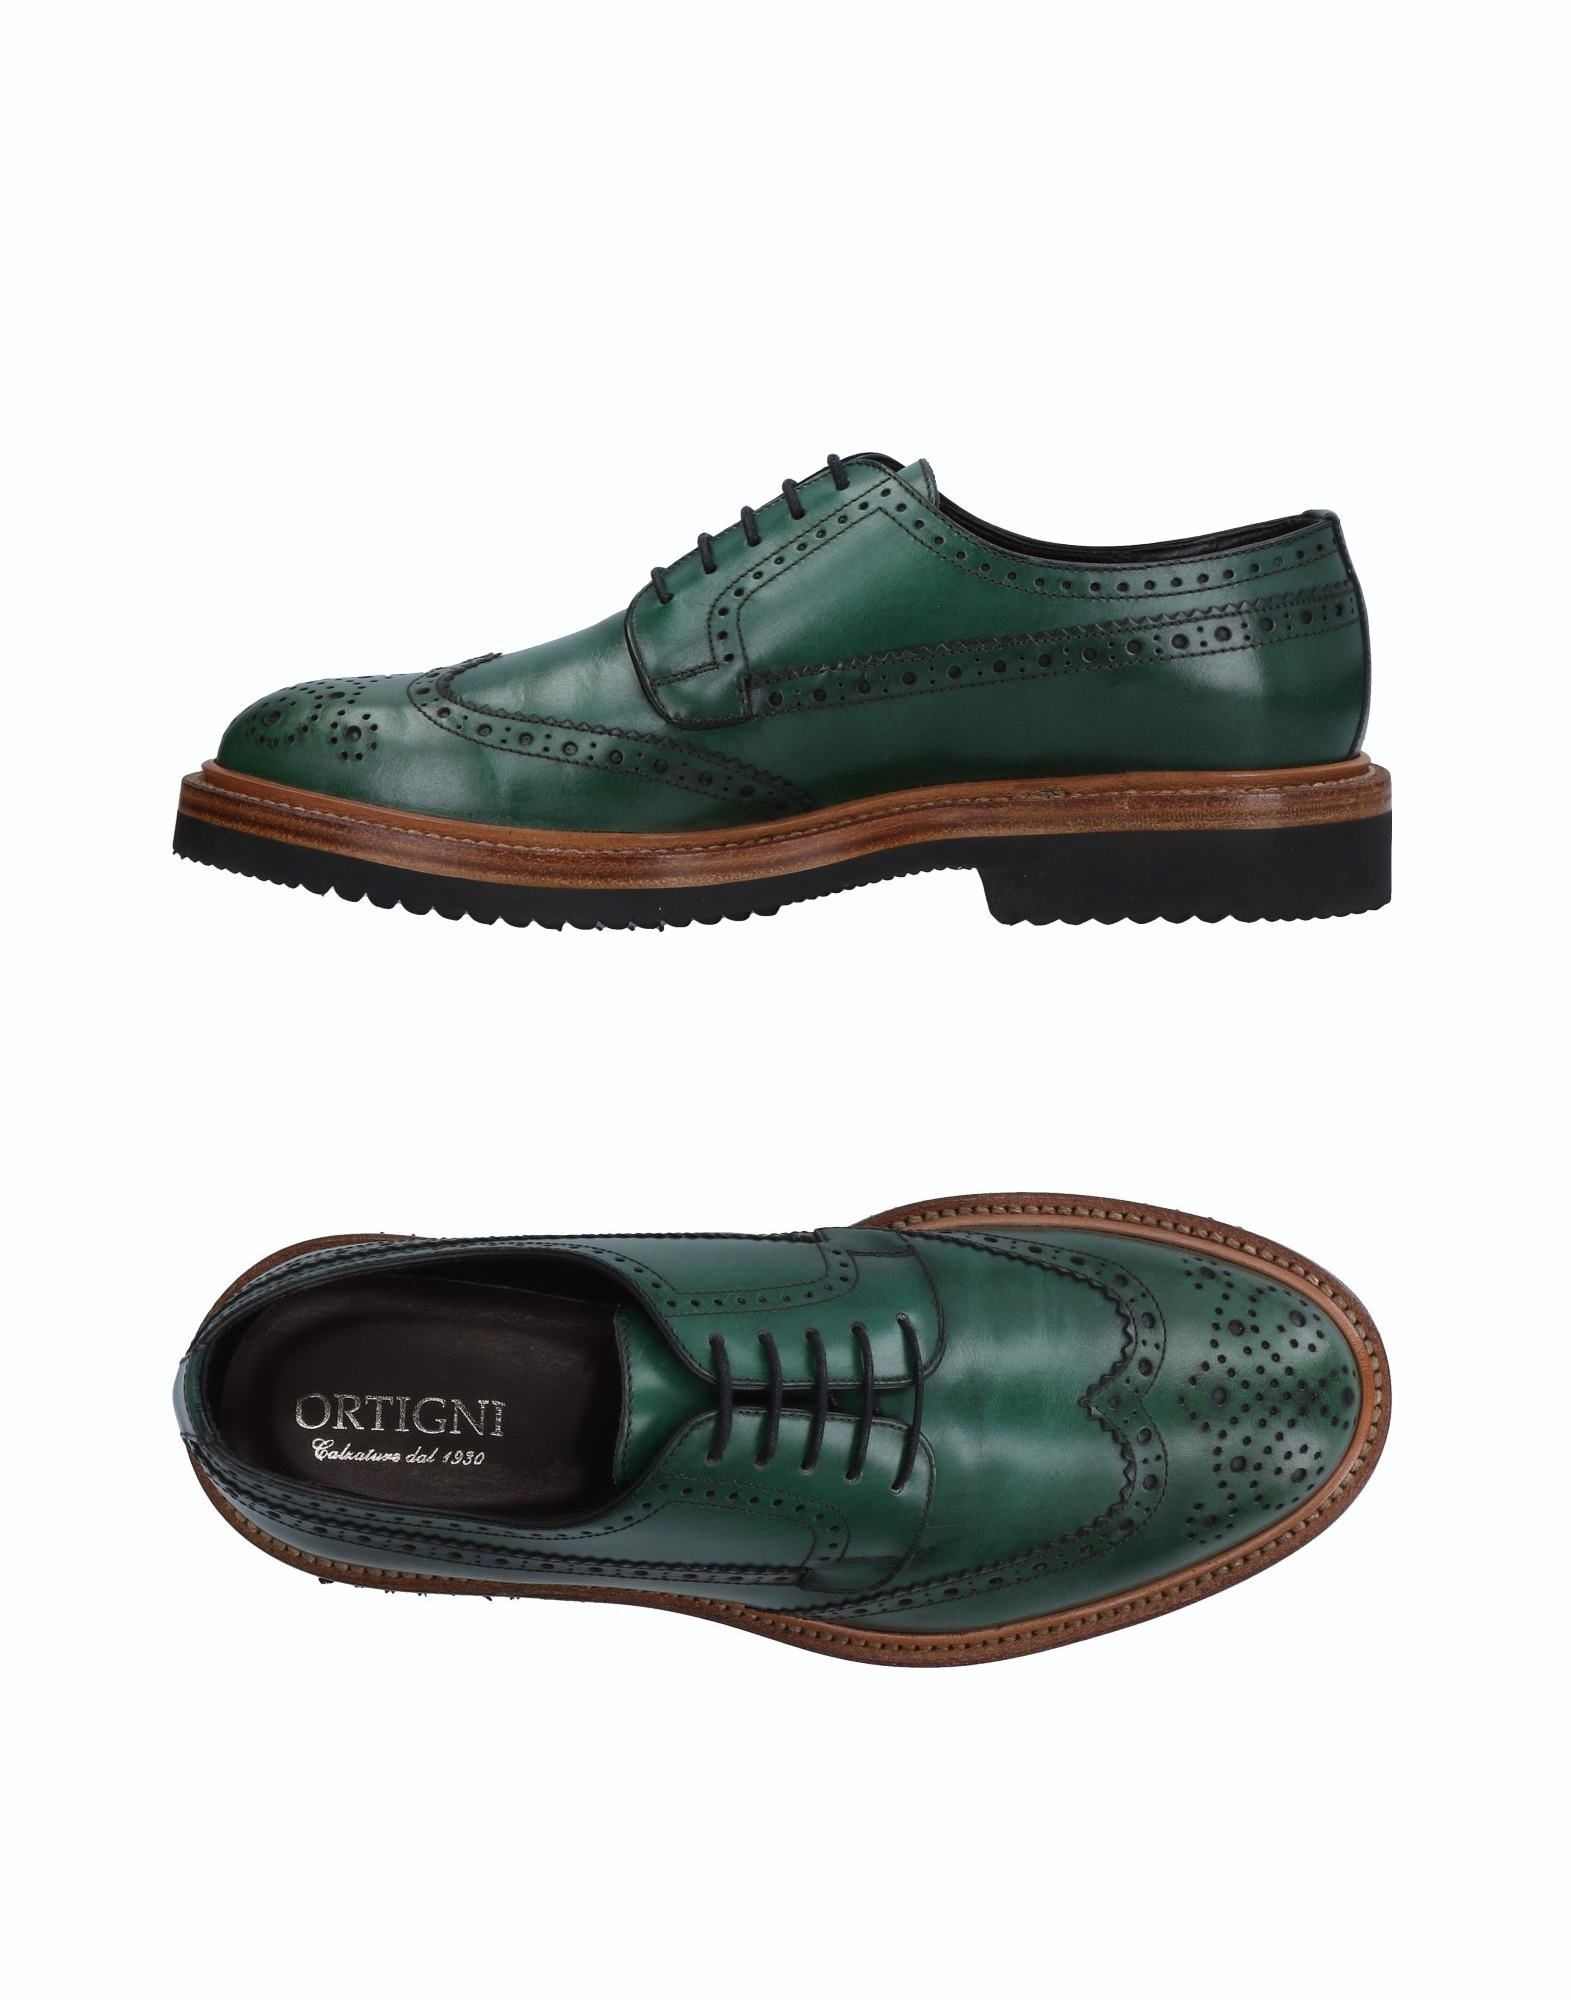 ORTIGNI Laced Shoes in Green